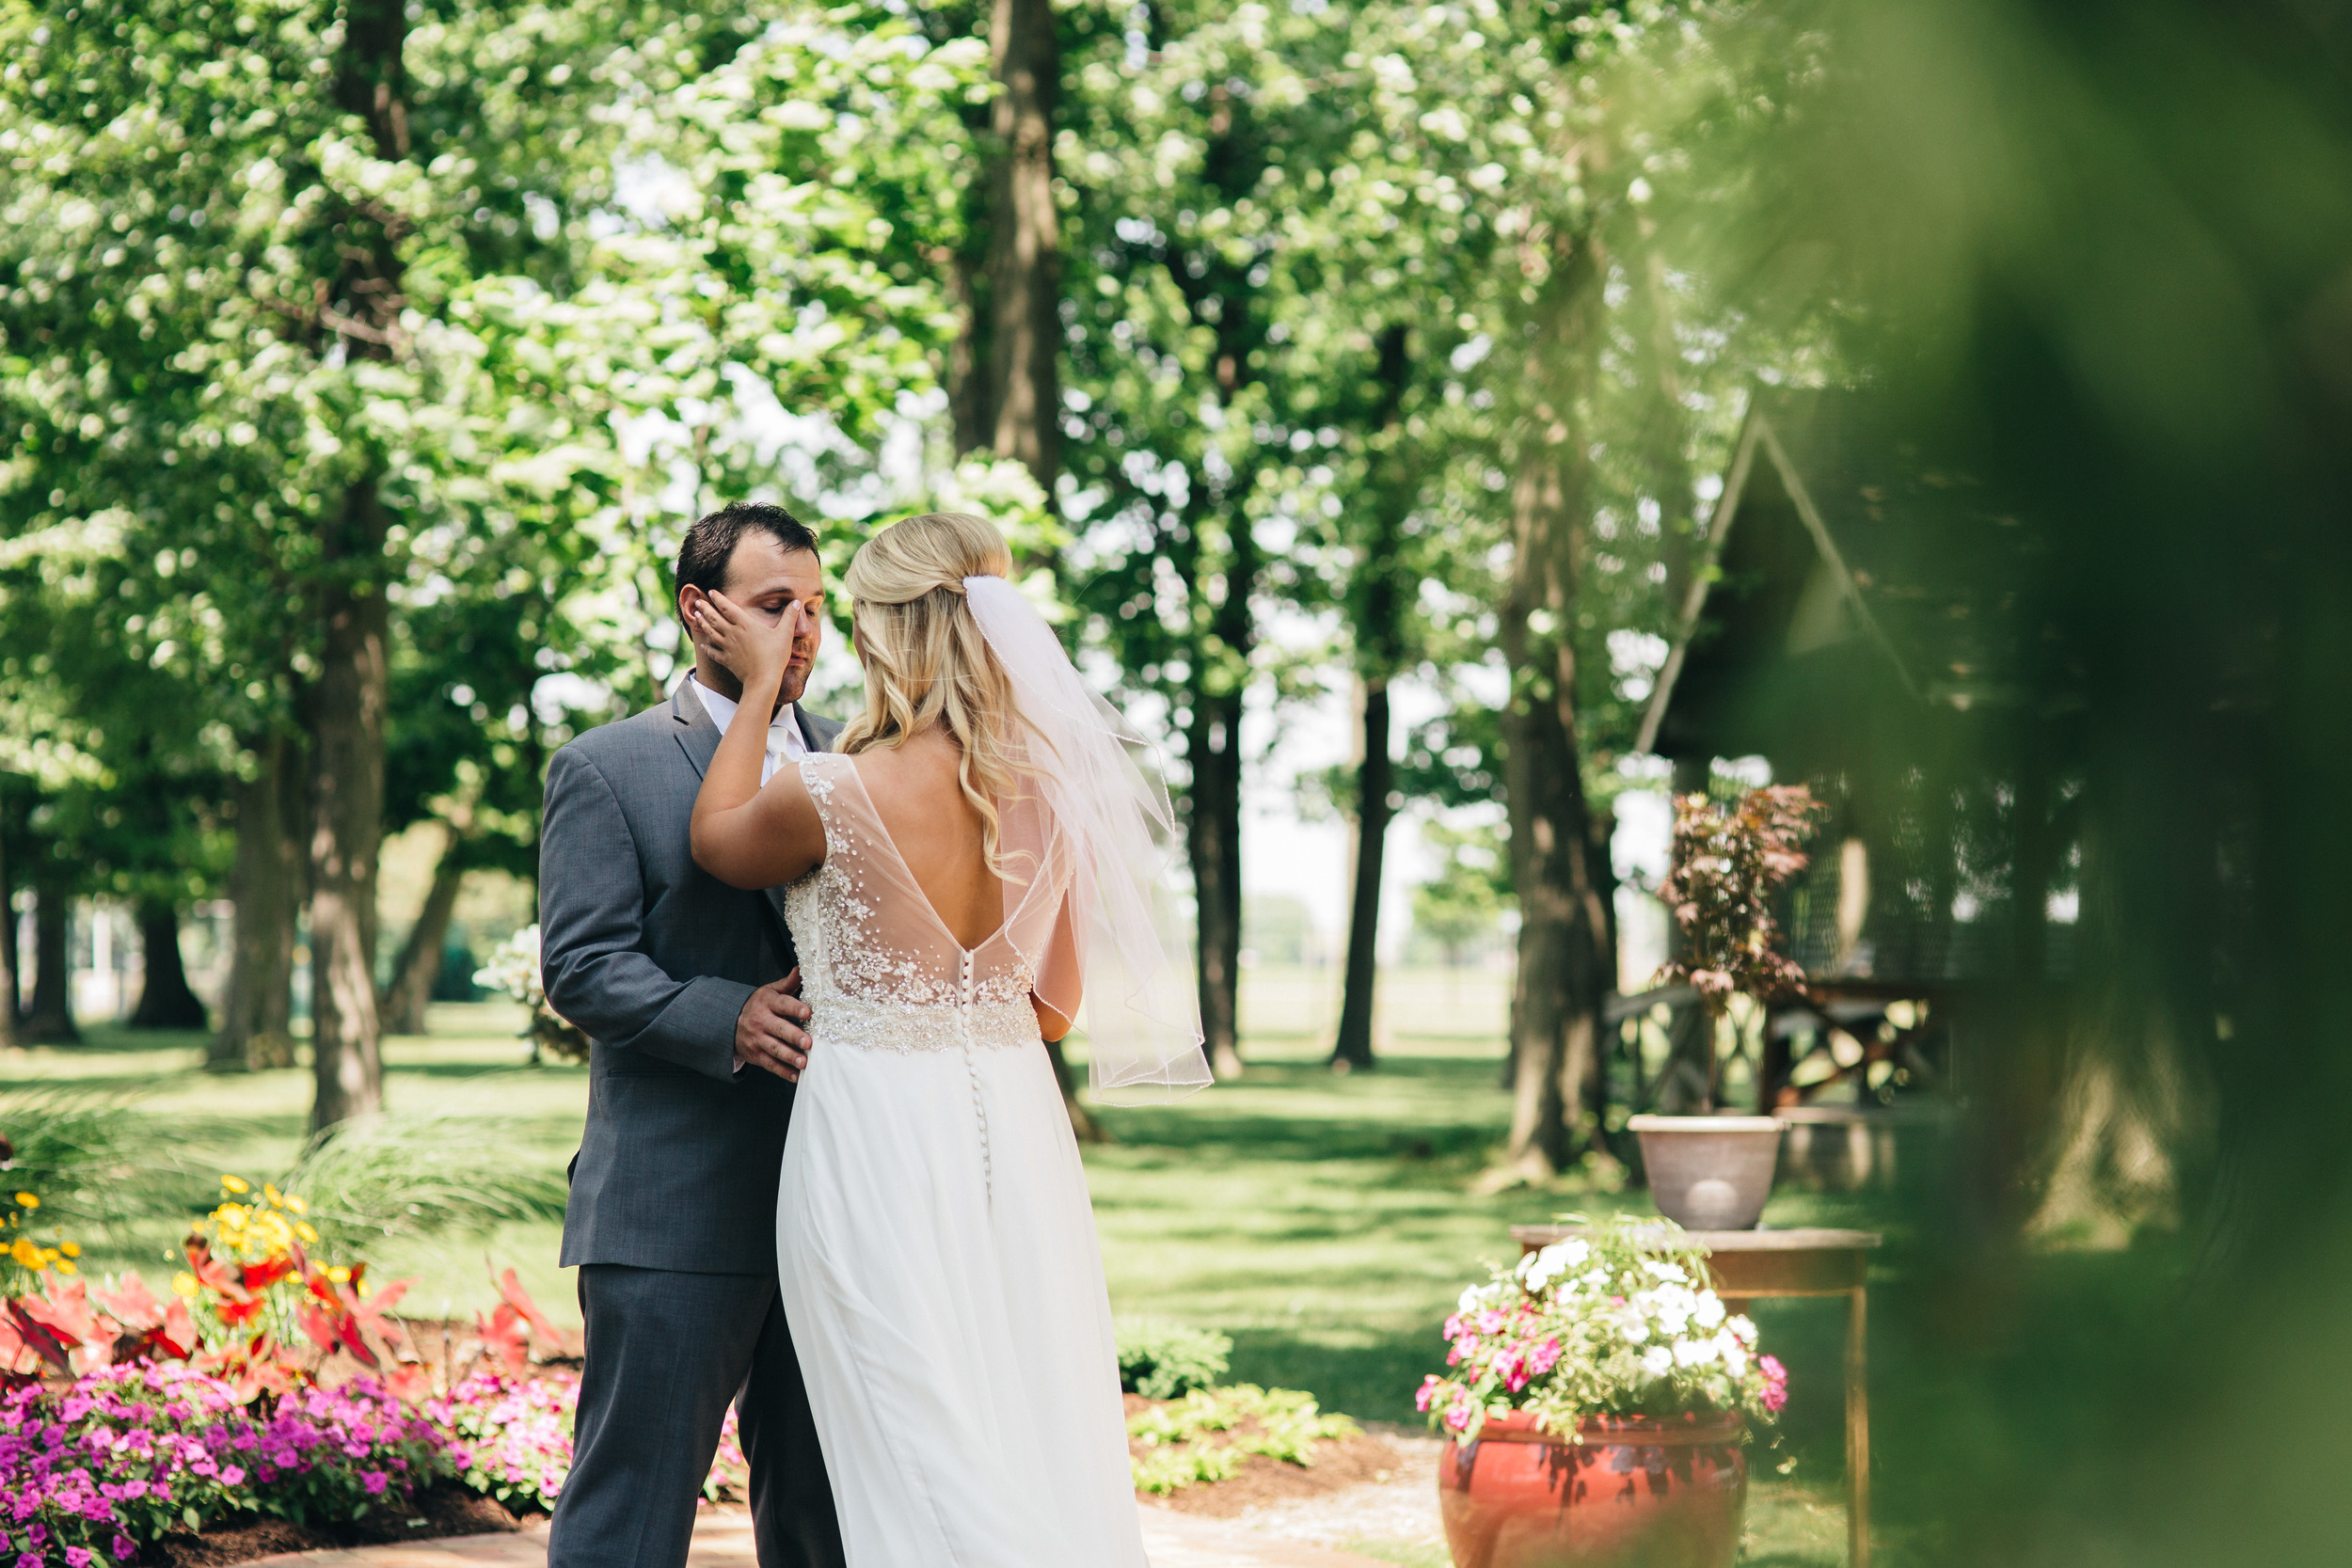 Groom gets emotional during first look with his bride during summer wedding.